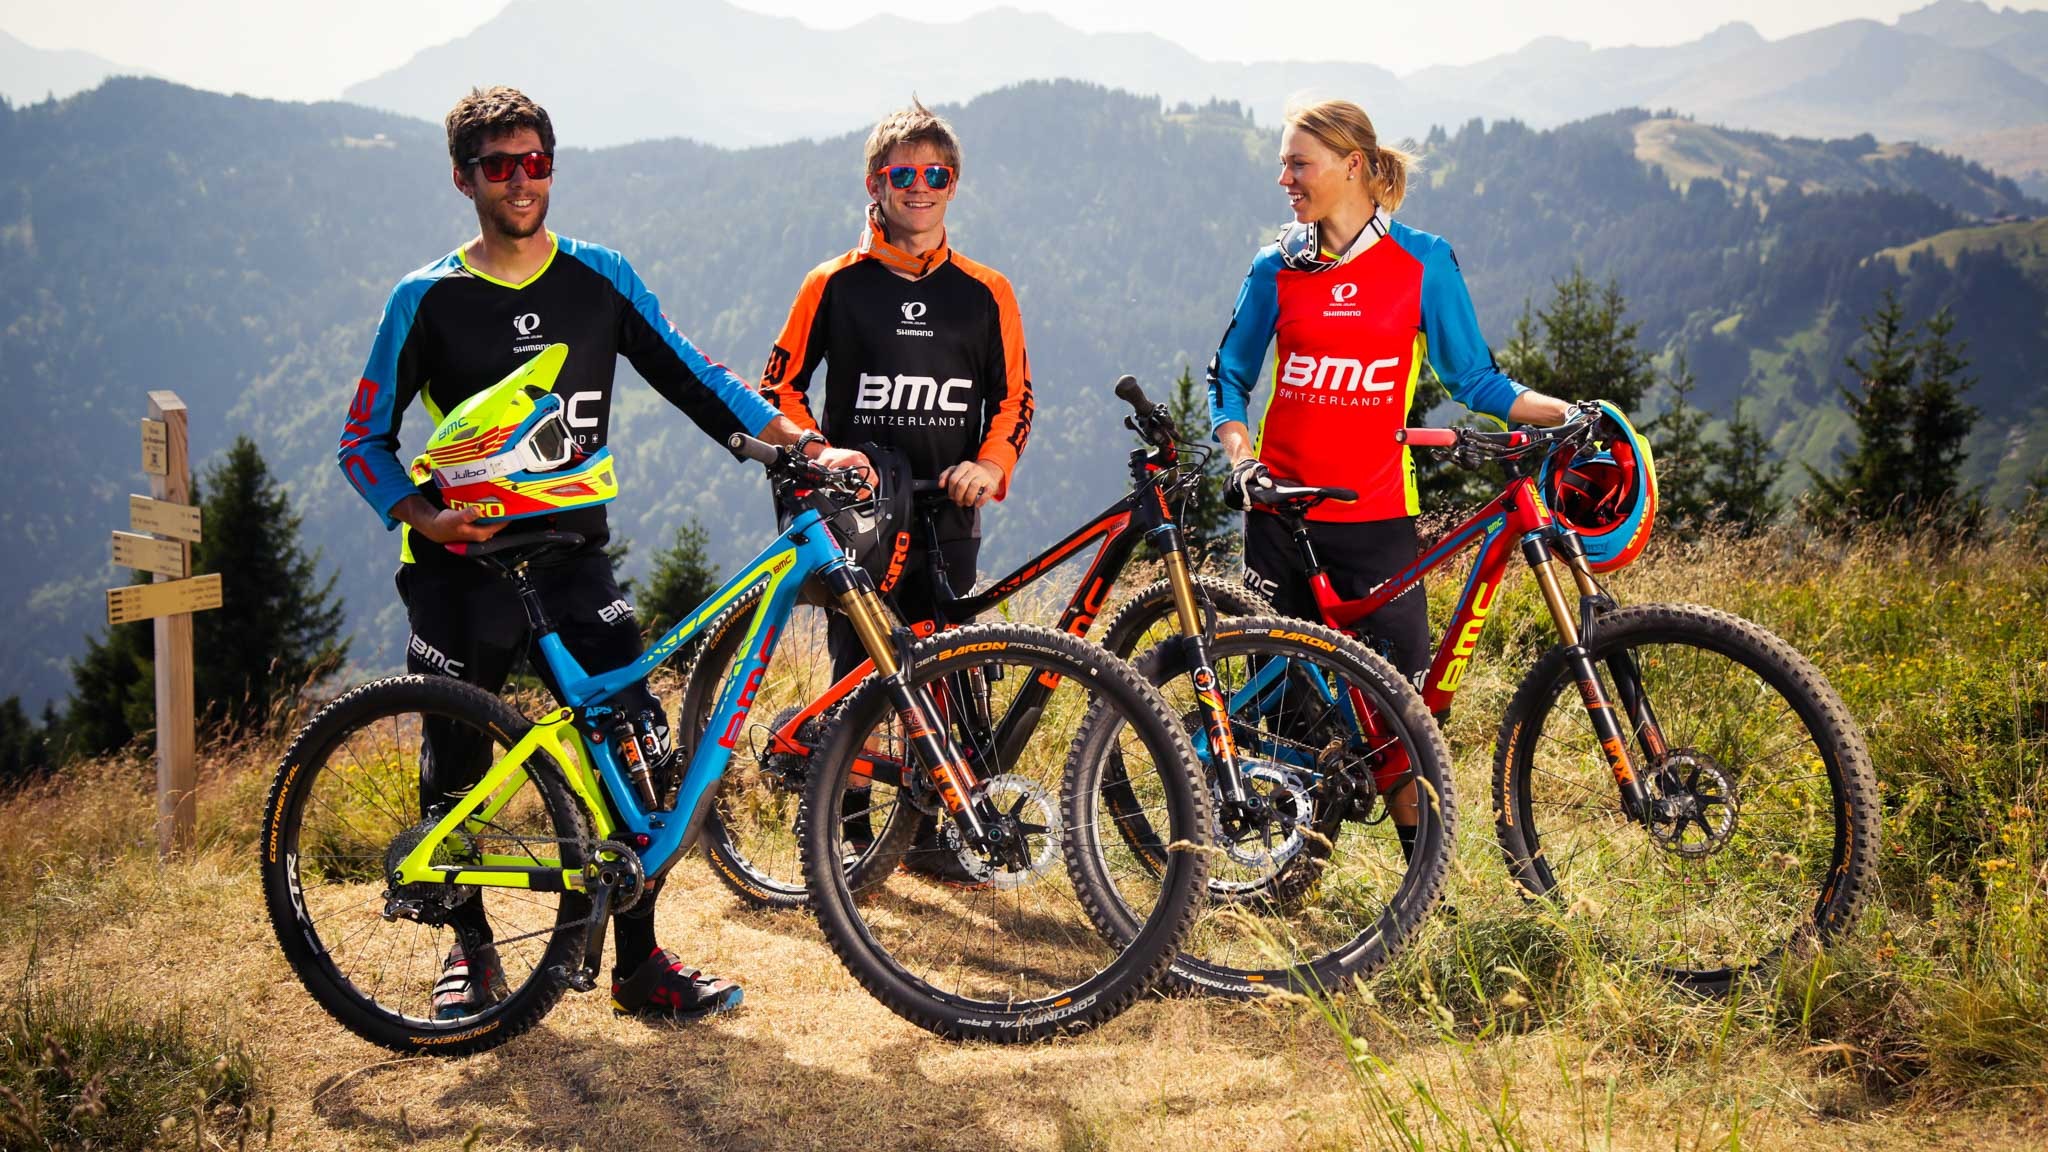 BMC-2016-Vojo-Trailfox-Trailcrew-teamelite-fourstroke-15